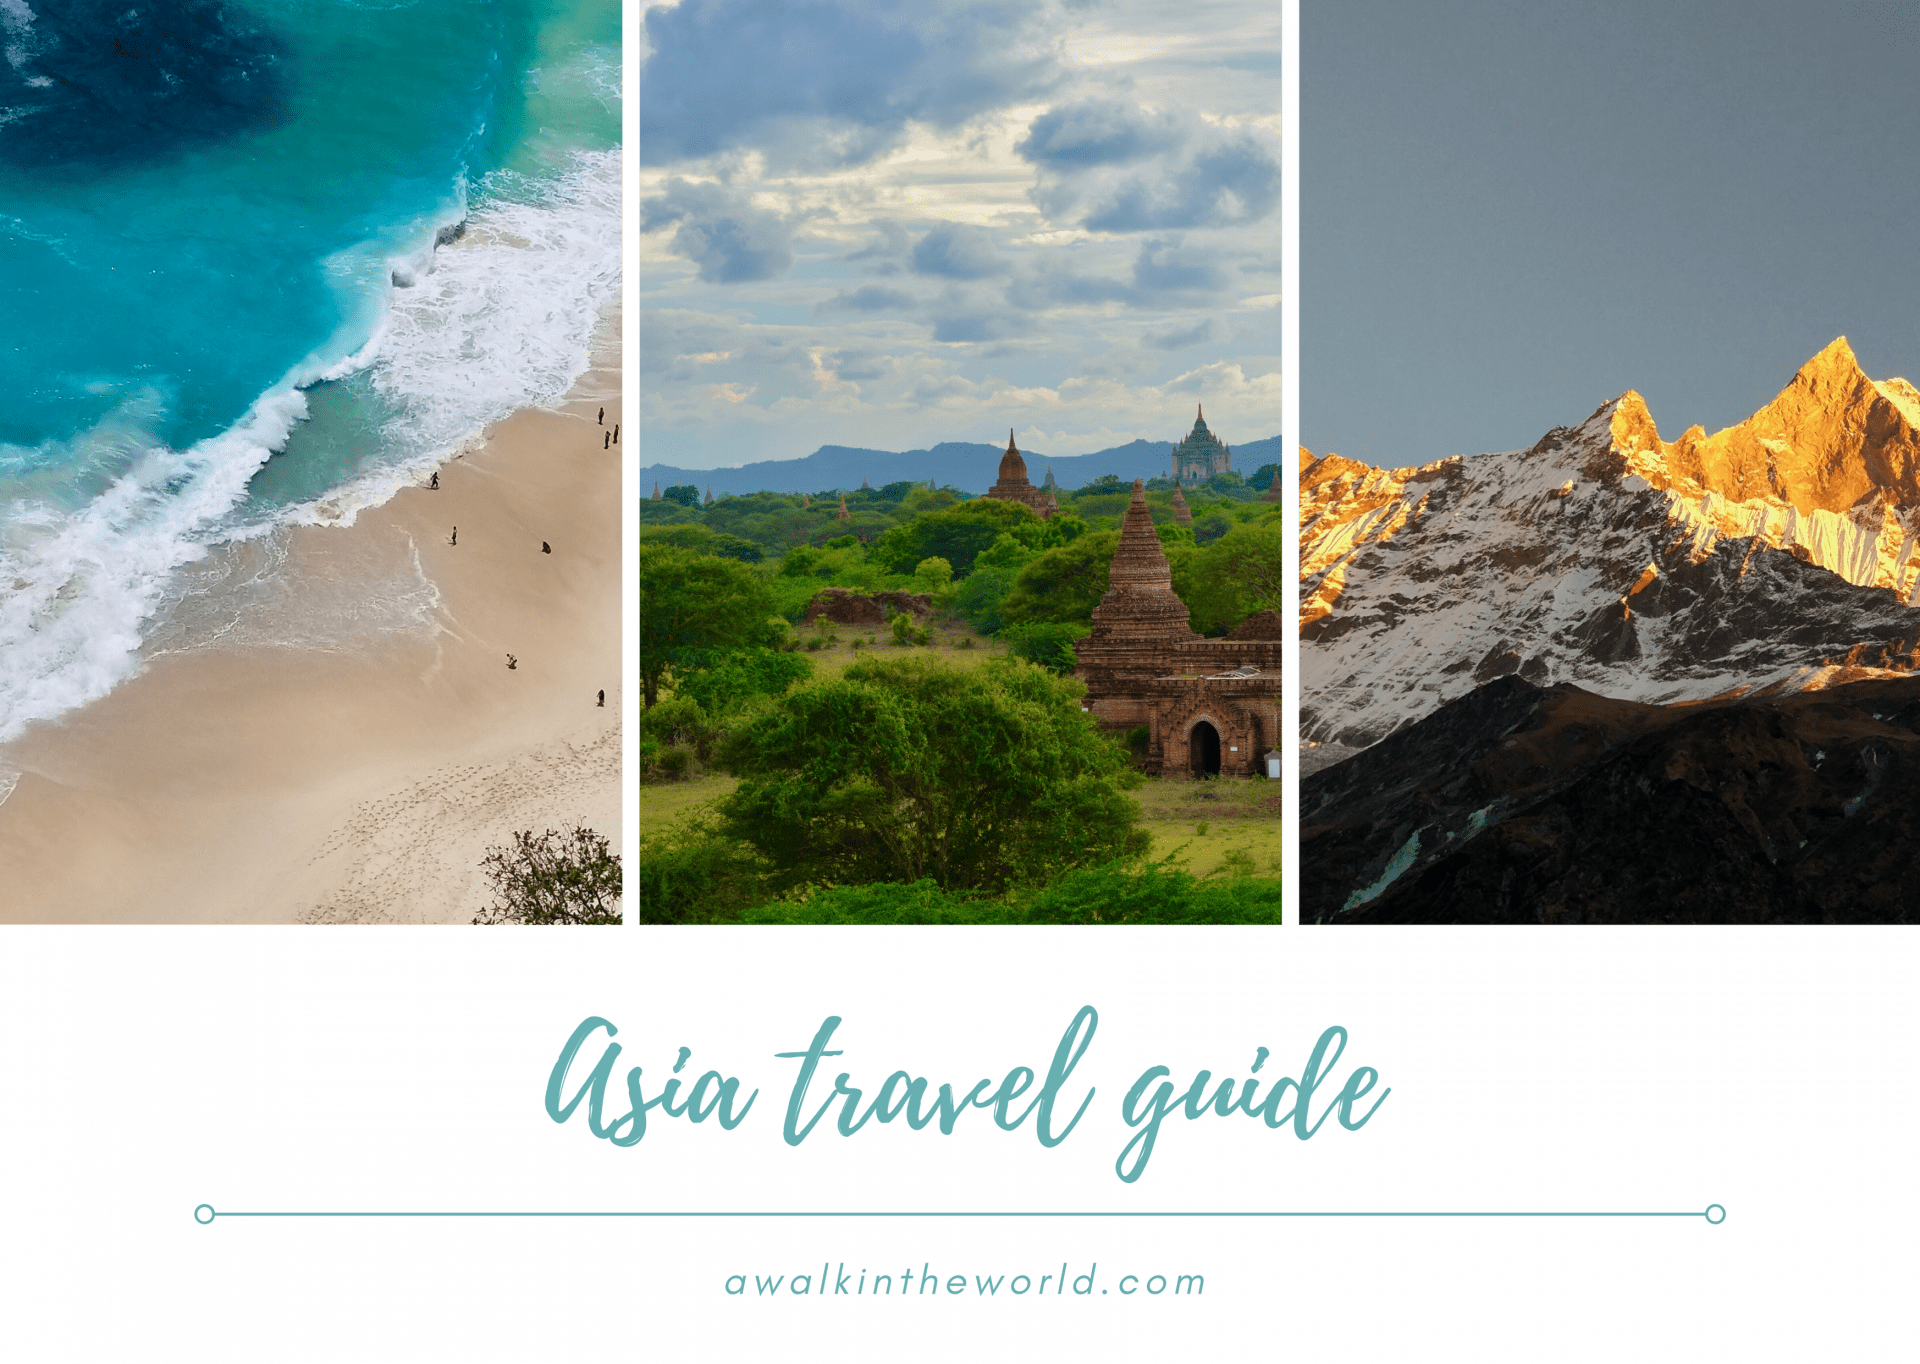 Asia Travel Guide - A Walk in the World